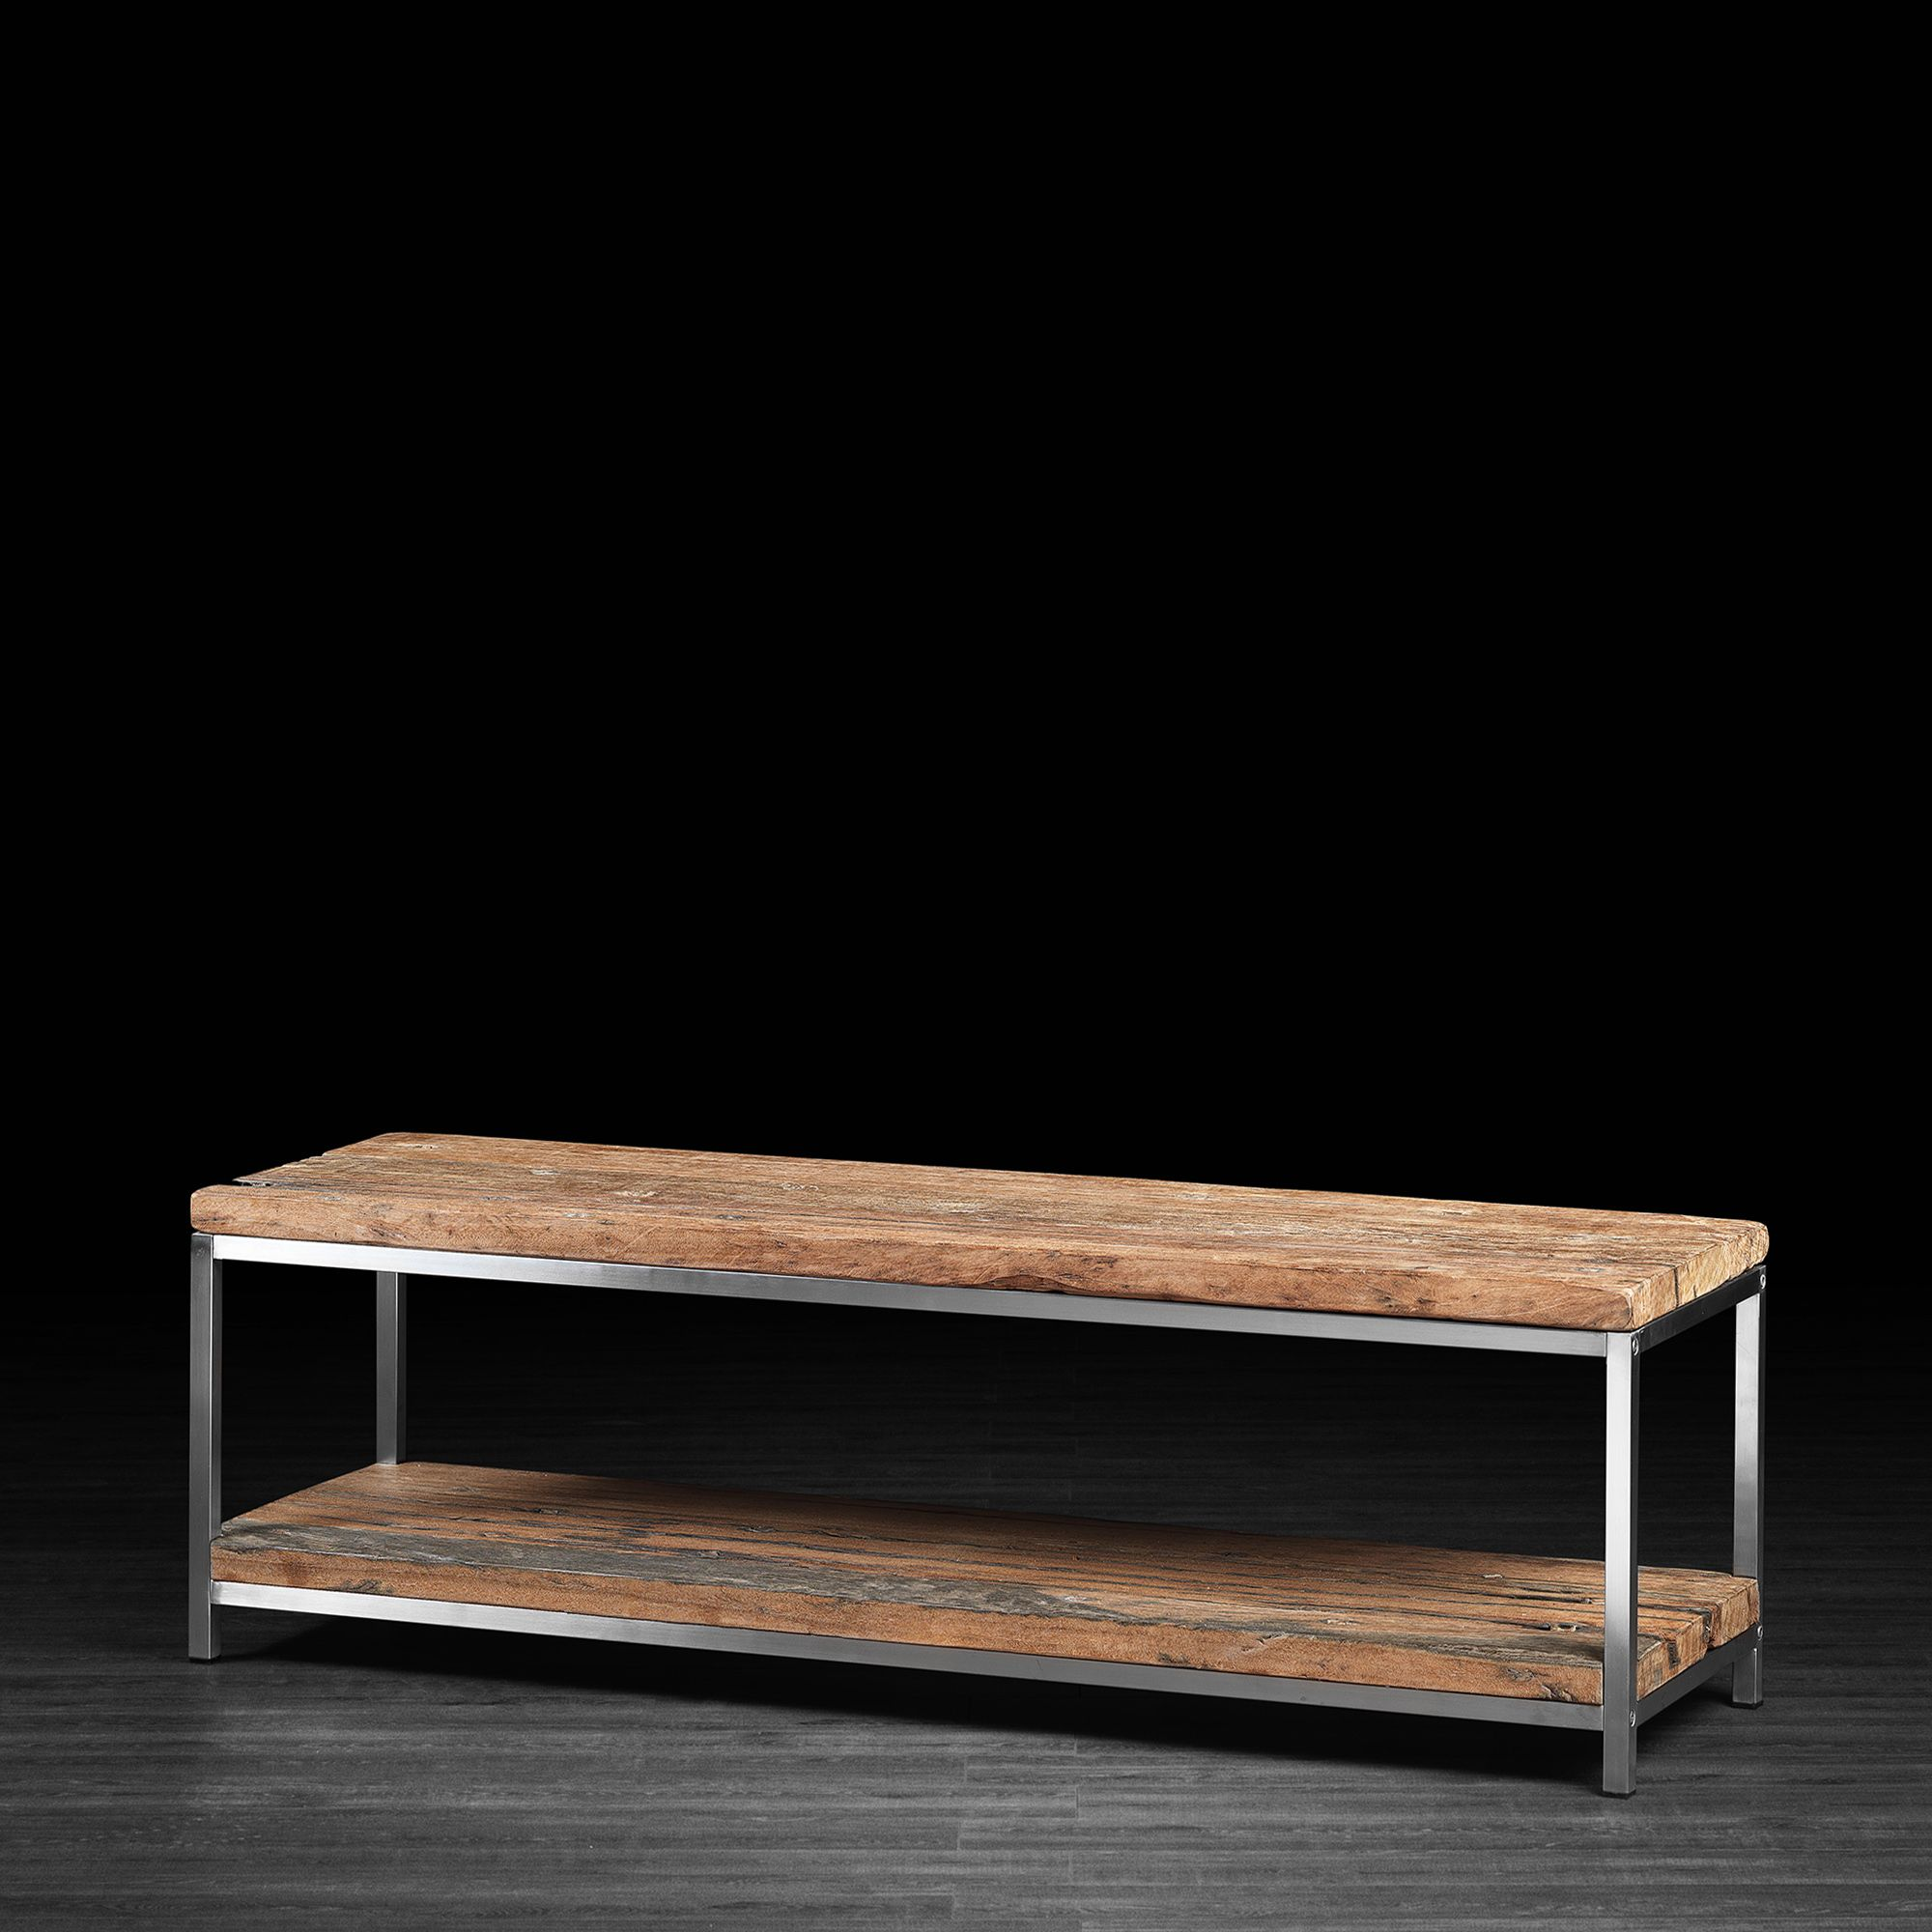 Tv Unit Made Of Recycled Railway Wood With Stainless Steel Legs  # Meuble Console Pour Tv